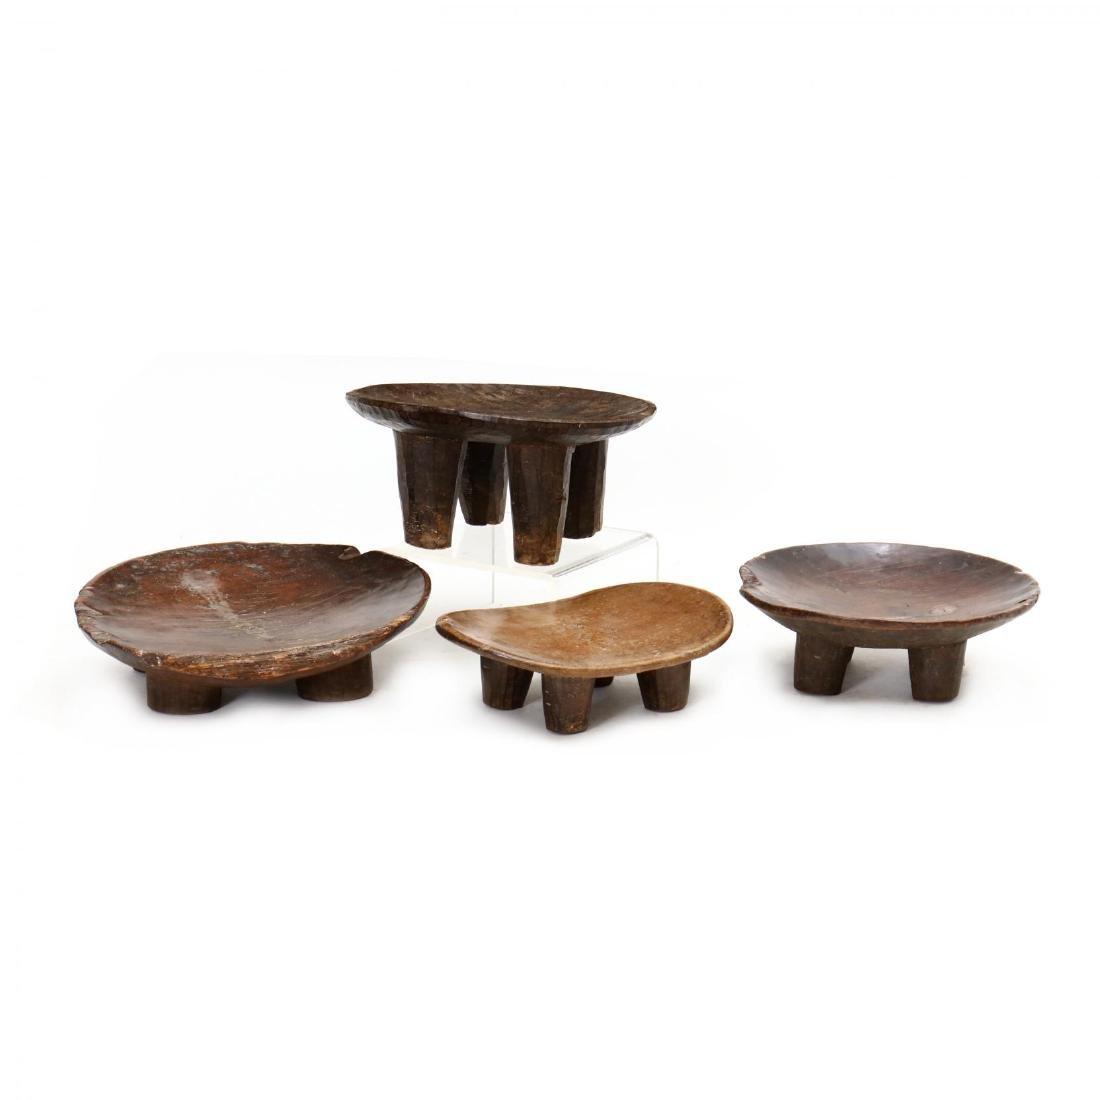 Four African Carved Wood Stools